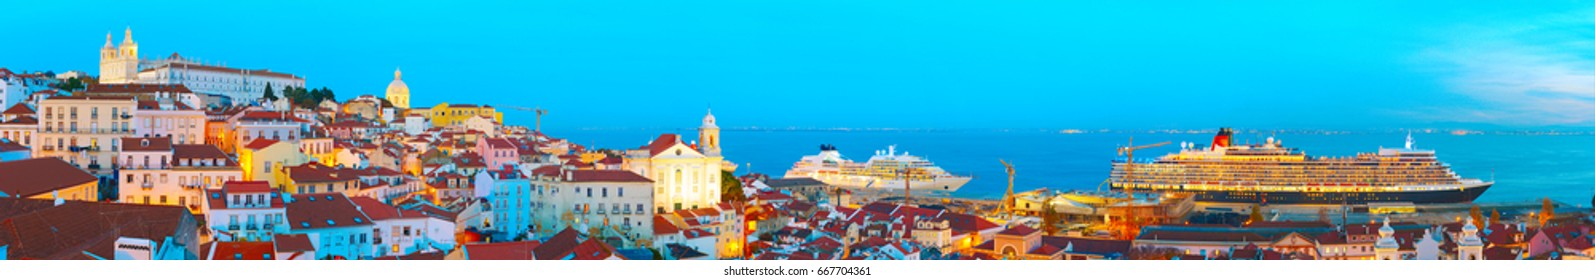 Panoramic view of Lisbon Old Town and sea port with luxury cruise ships. Portugal